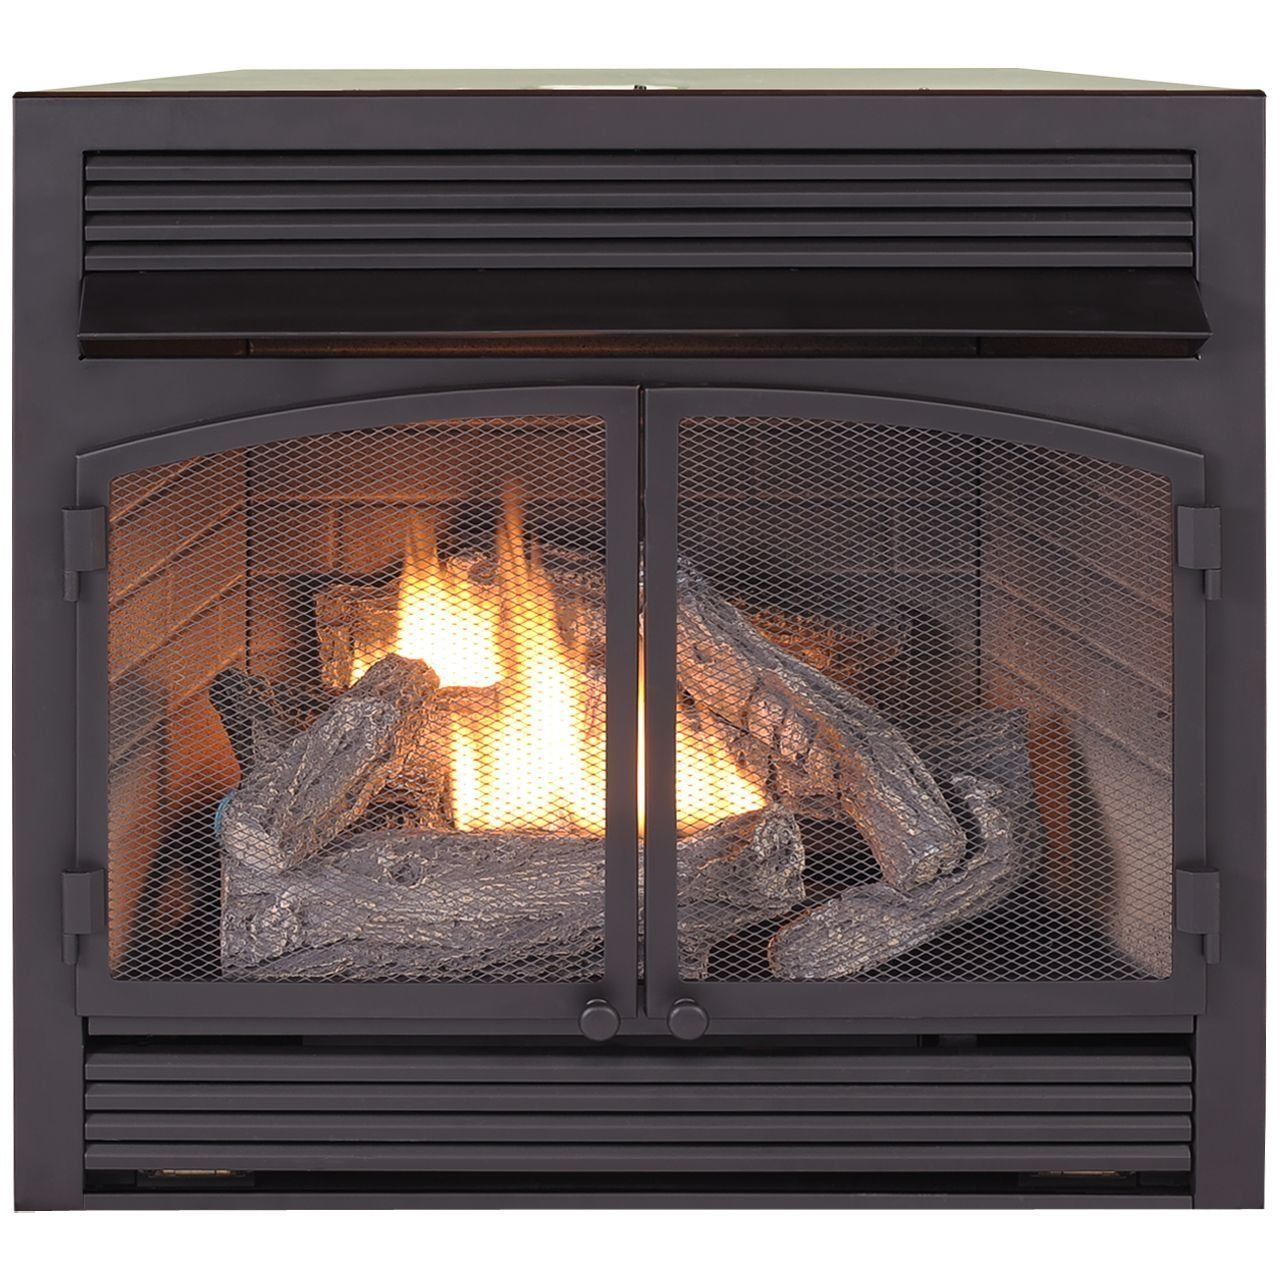 dual fuel ventless natural gas propane fireplace insert for the